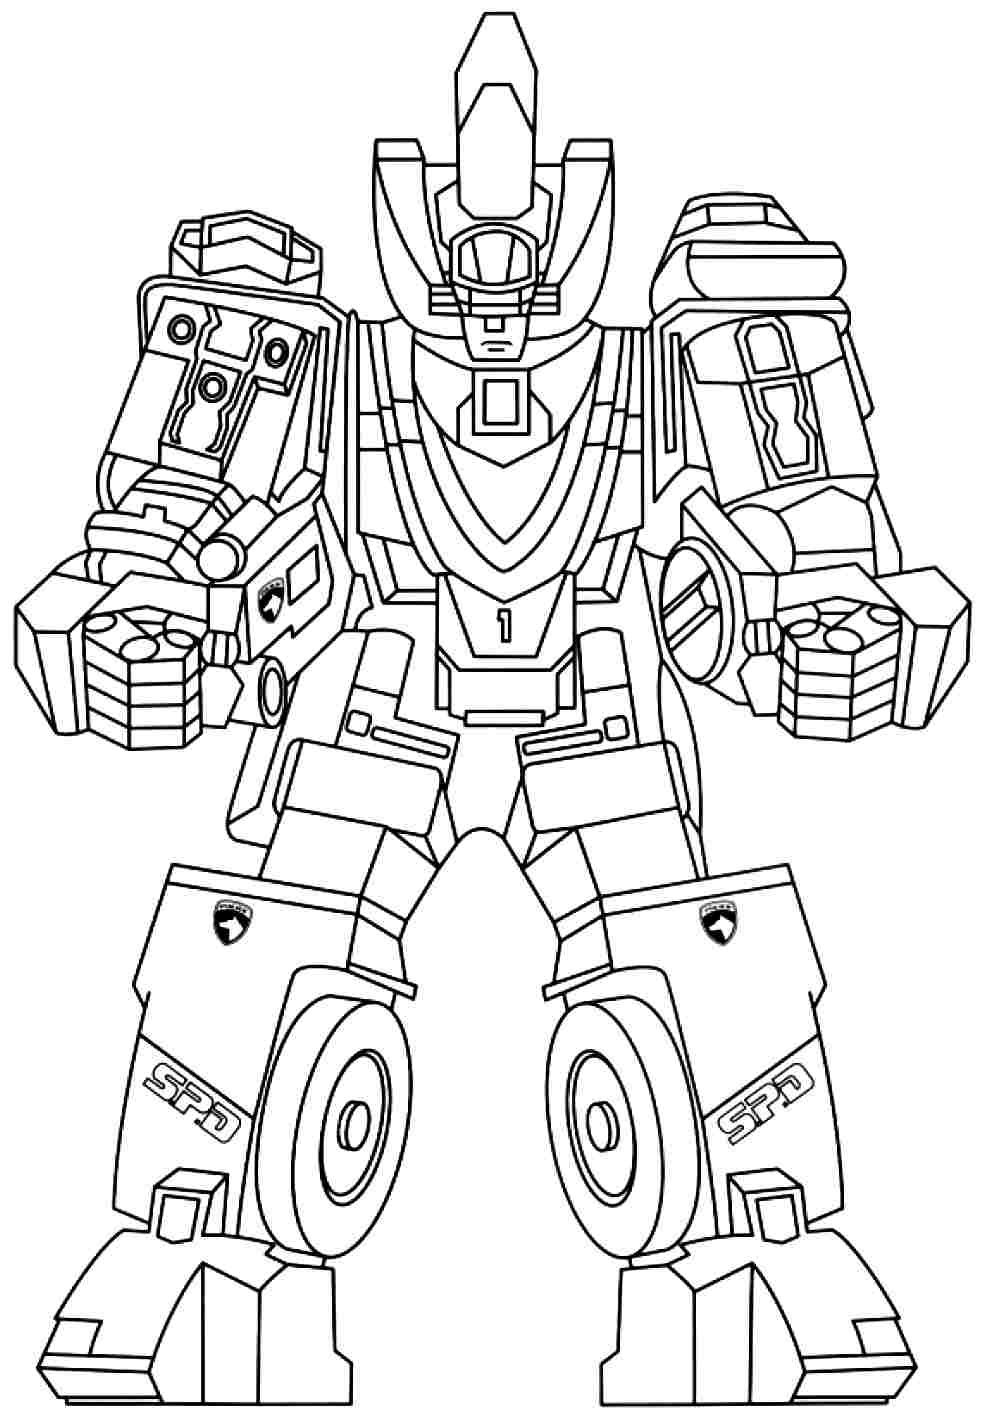 Power Rangers Colouring Pages ...pinterest.fr